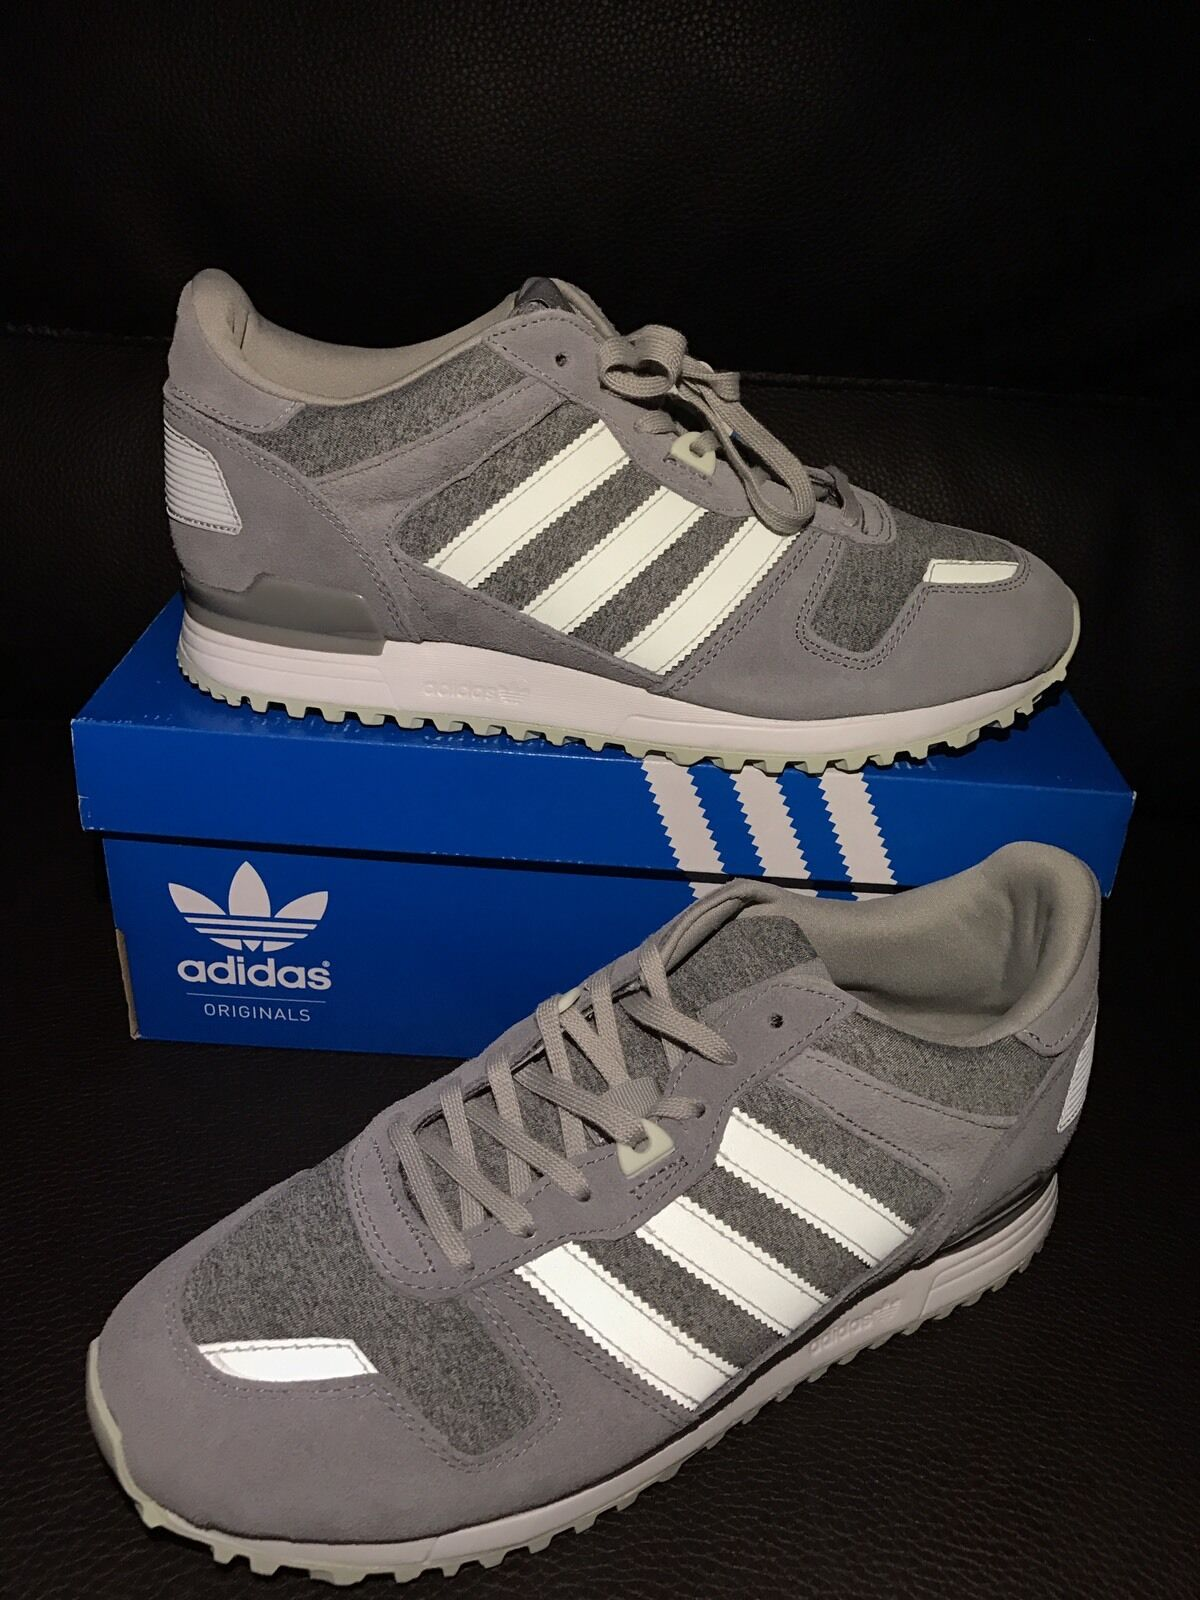 Adidas zx 700 W Gray Trainer Athletic zapatillas zapatillas 3 8,5 US 7 / 3 zapatillas 80015a